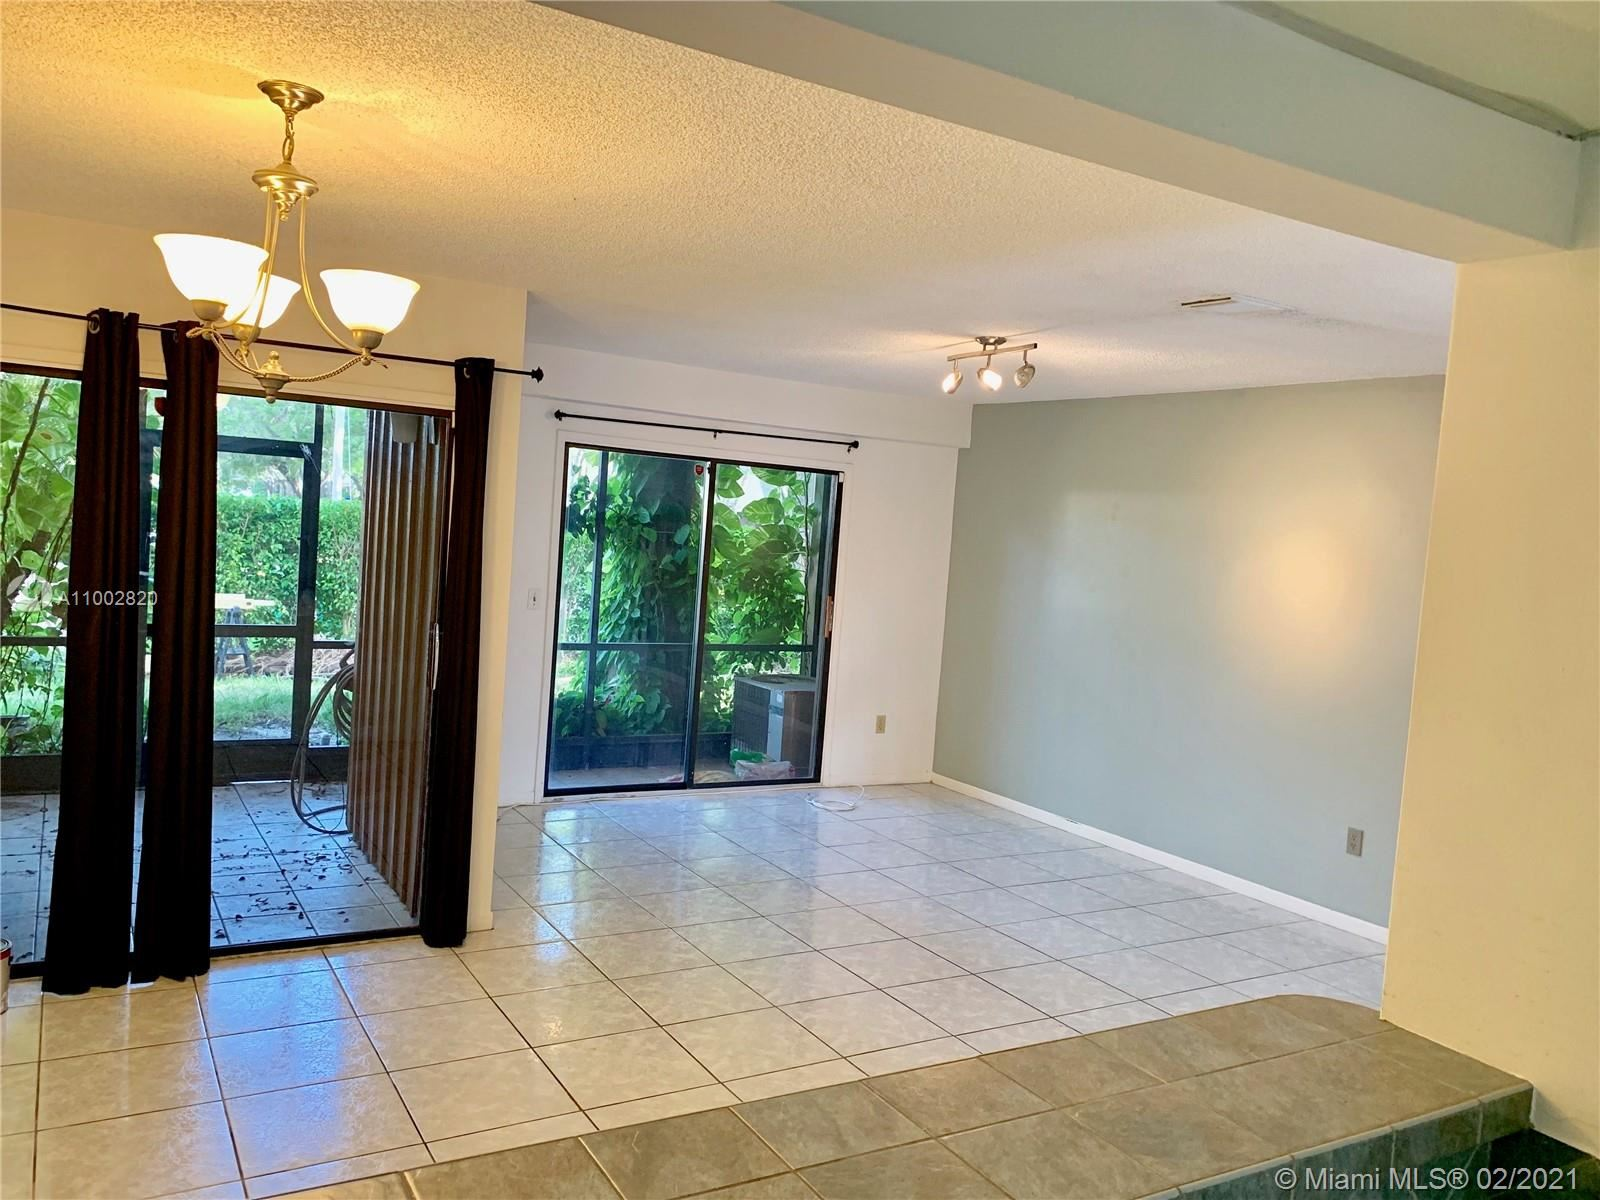 Photo of 1408 S Gabriel St #0, Hollywood, FL 33020 (MLS # A11002820)